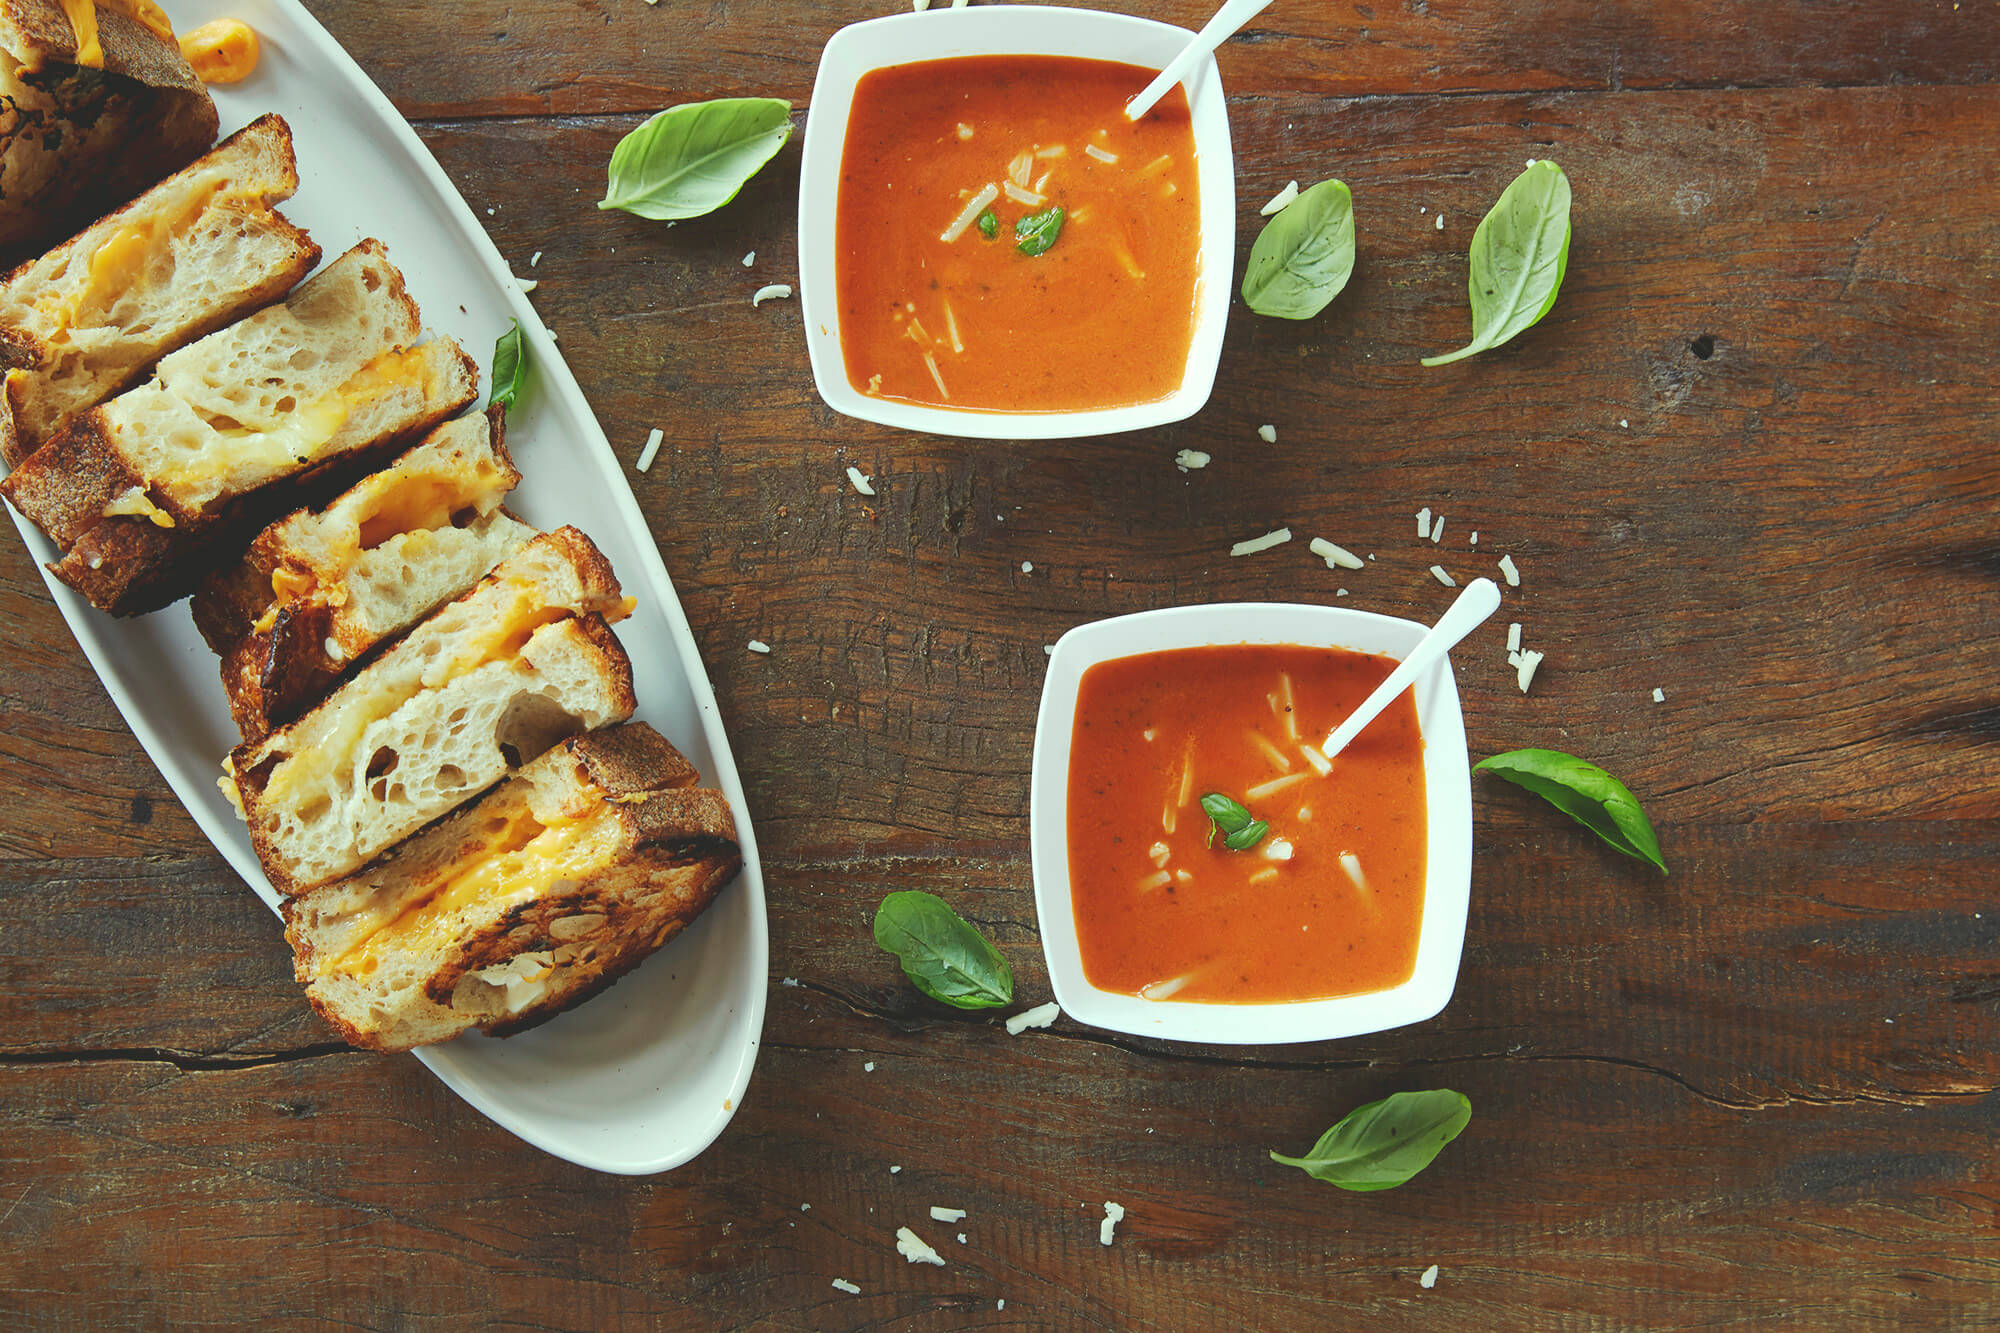 170824_TheHungryPea_06_GrilledCheese-Soup_0331_TREATED.jpg